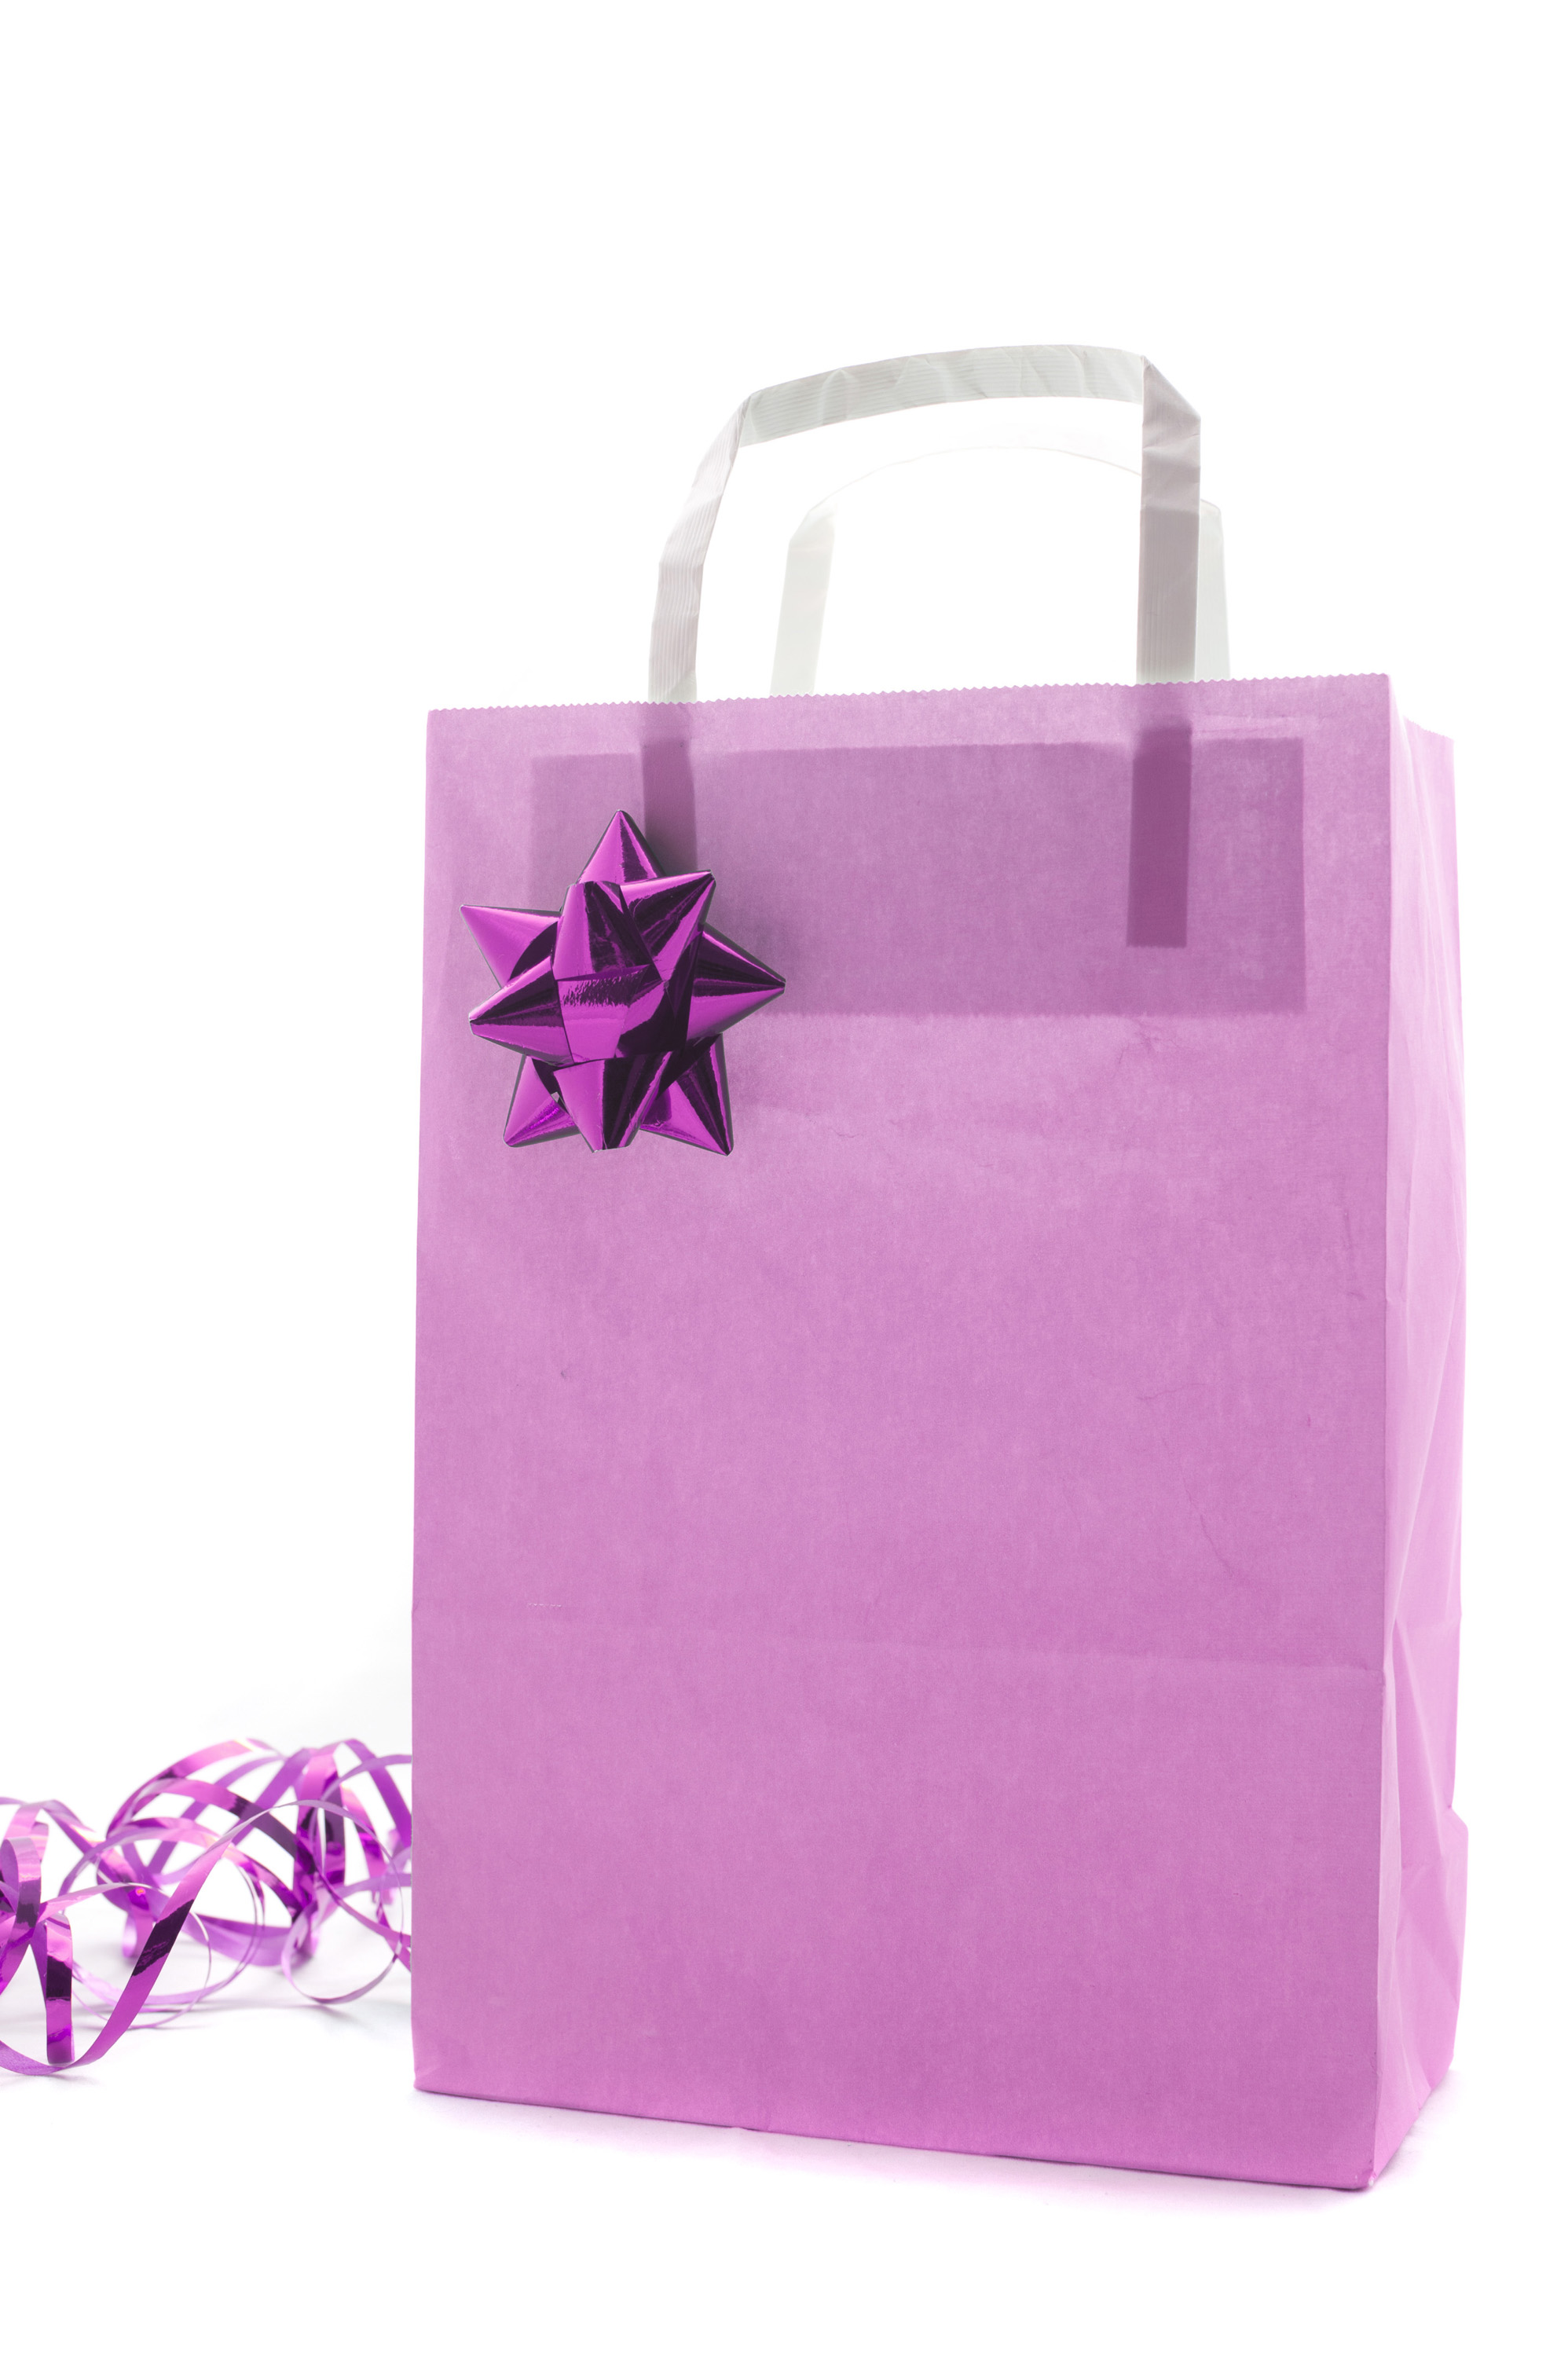 Pink Christmas shopping or gift bag decorated with a metallic bow and twirled ribbon isolated on a white background